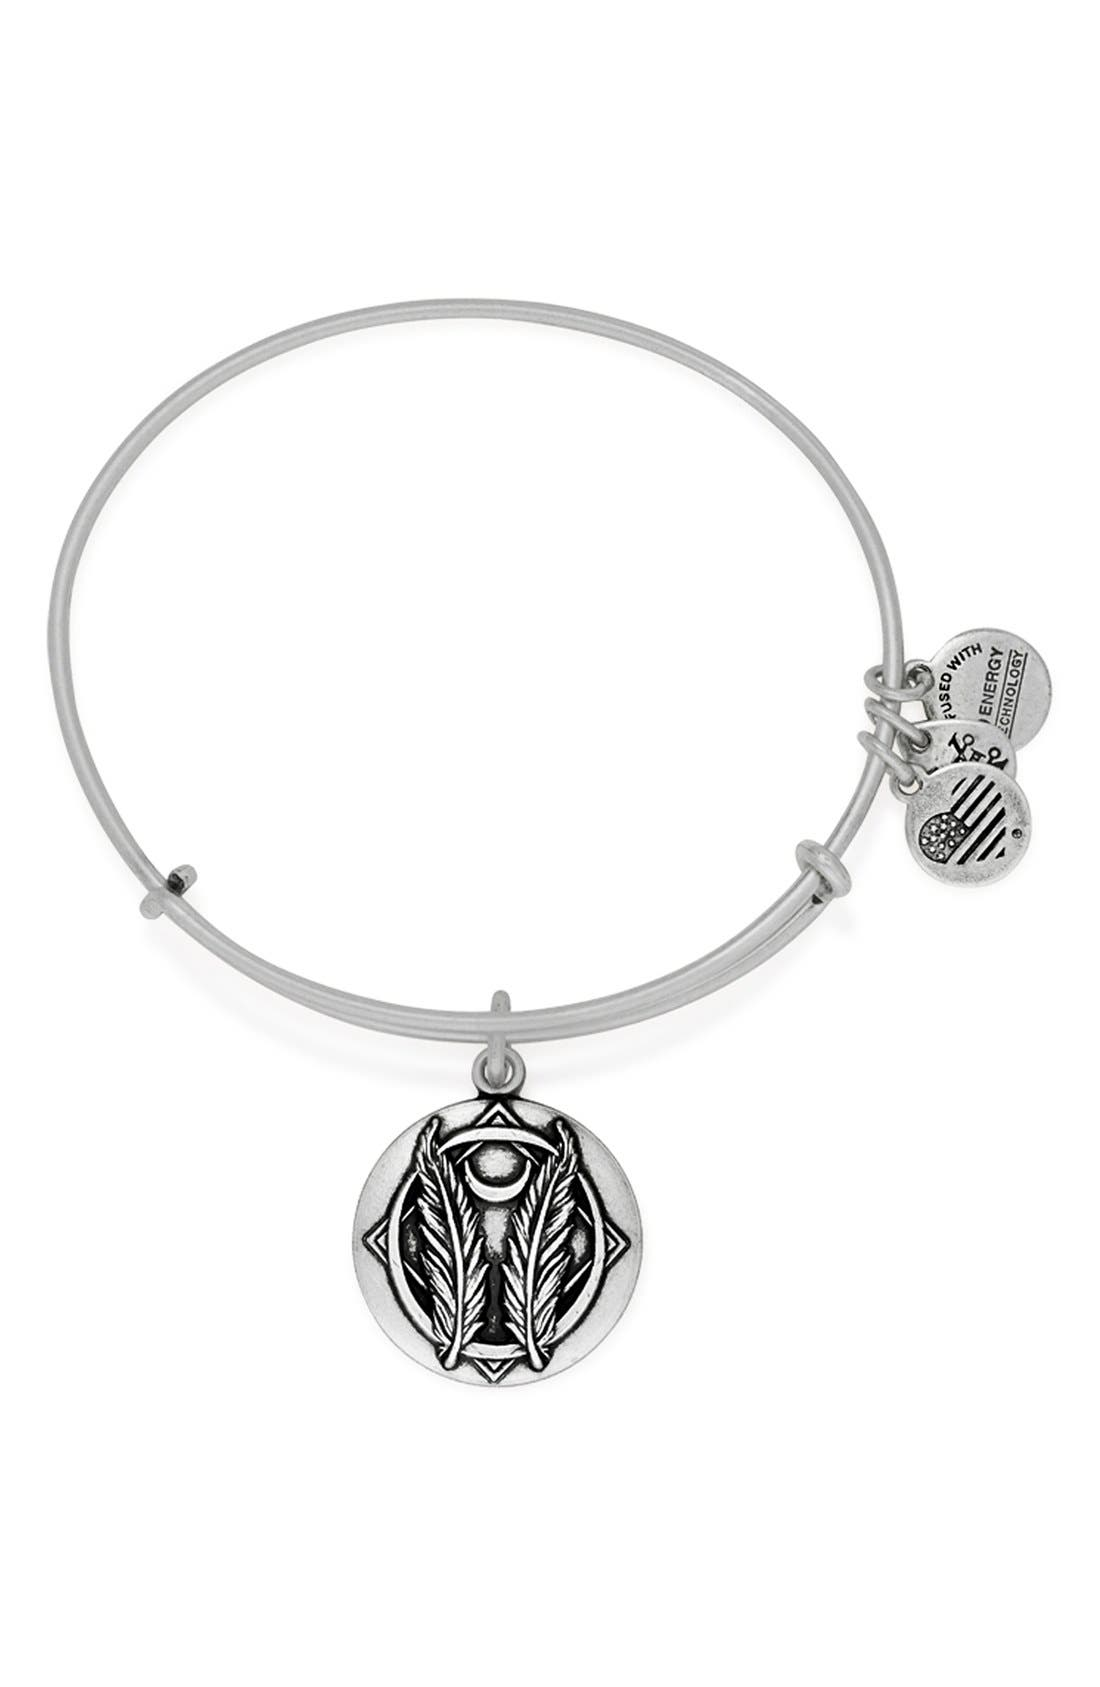 'Godspeed' Expandable Wire Bangle,                             Main thumbnail 1, color,                             Silver